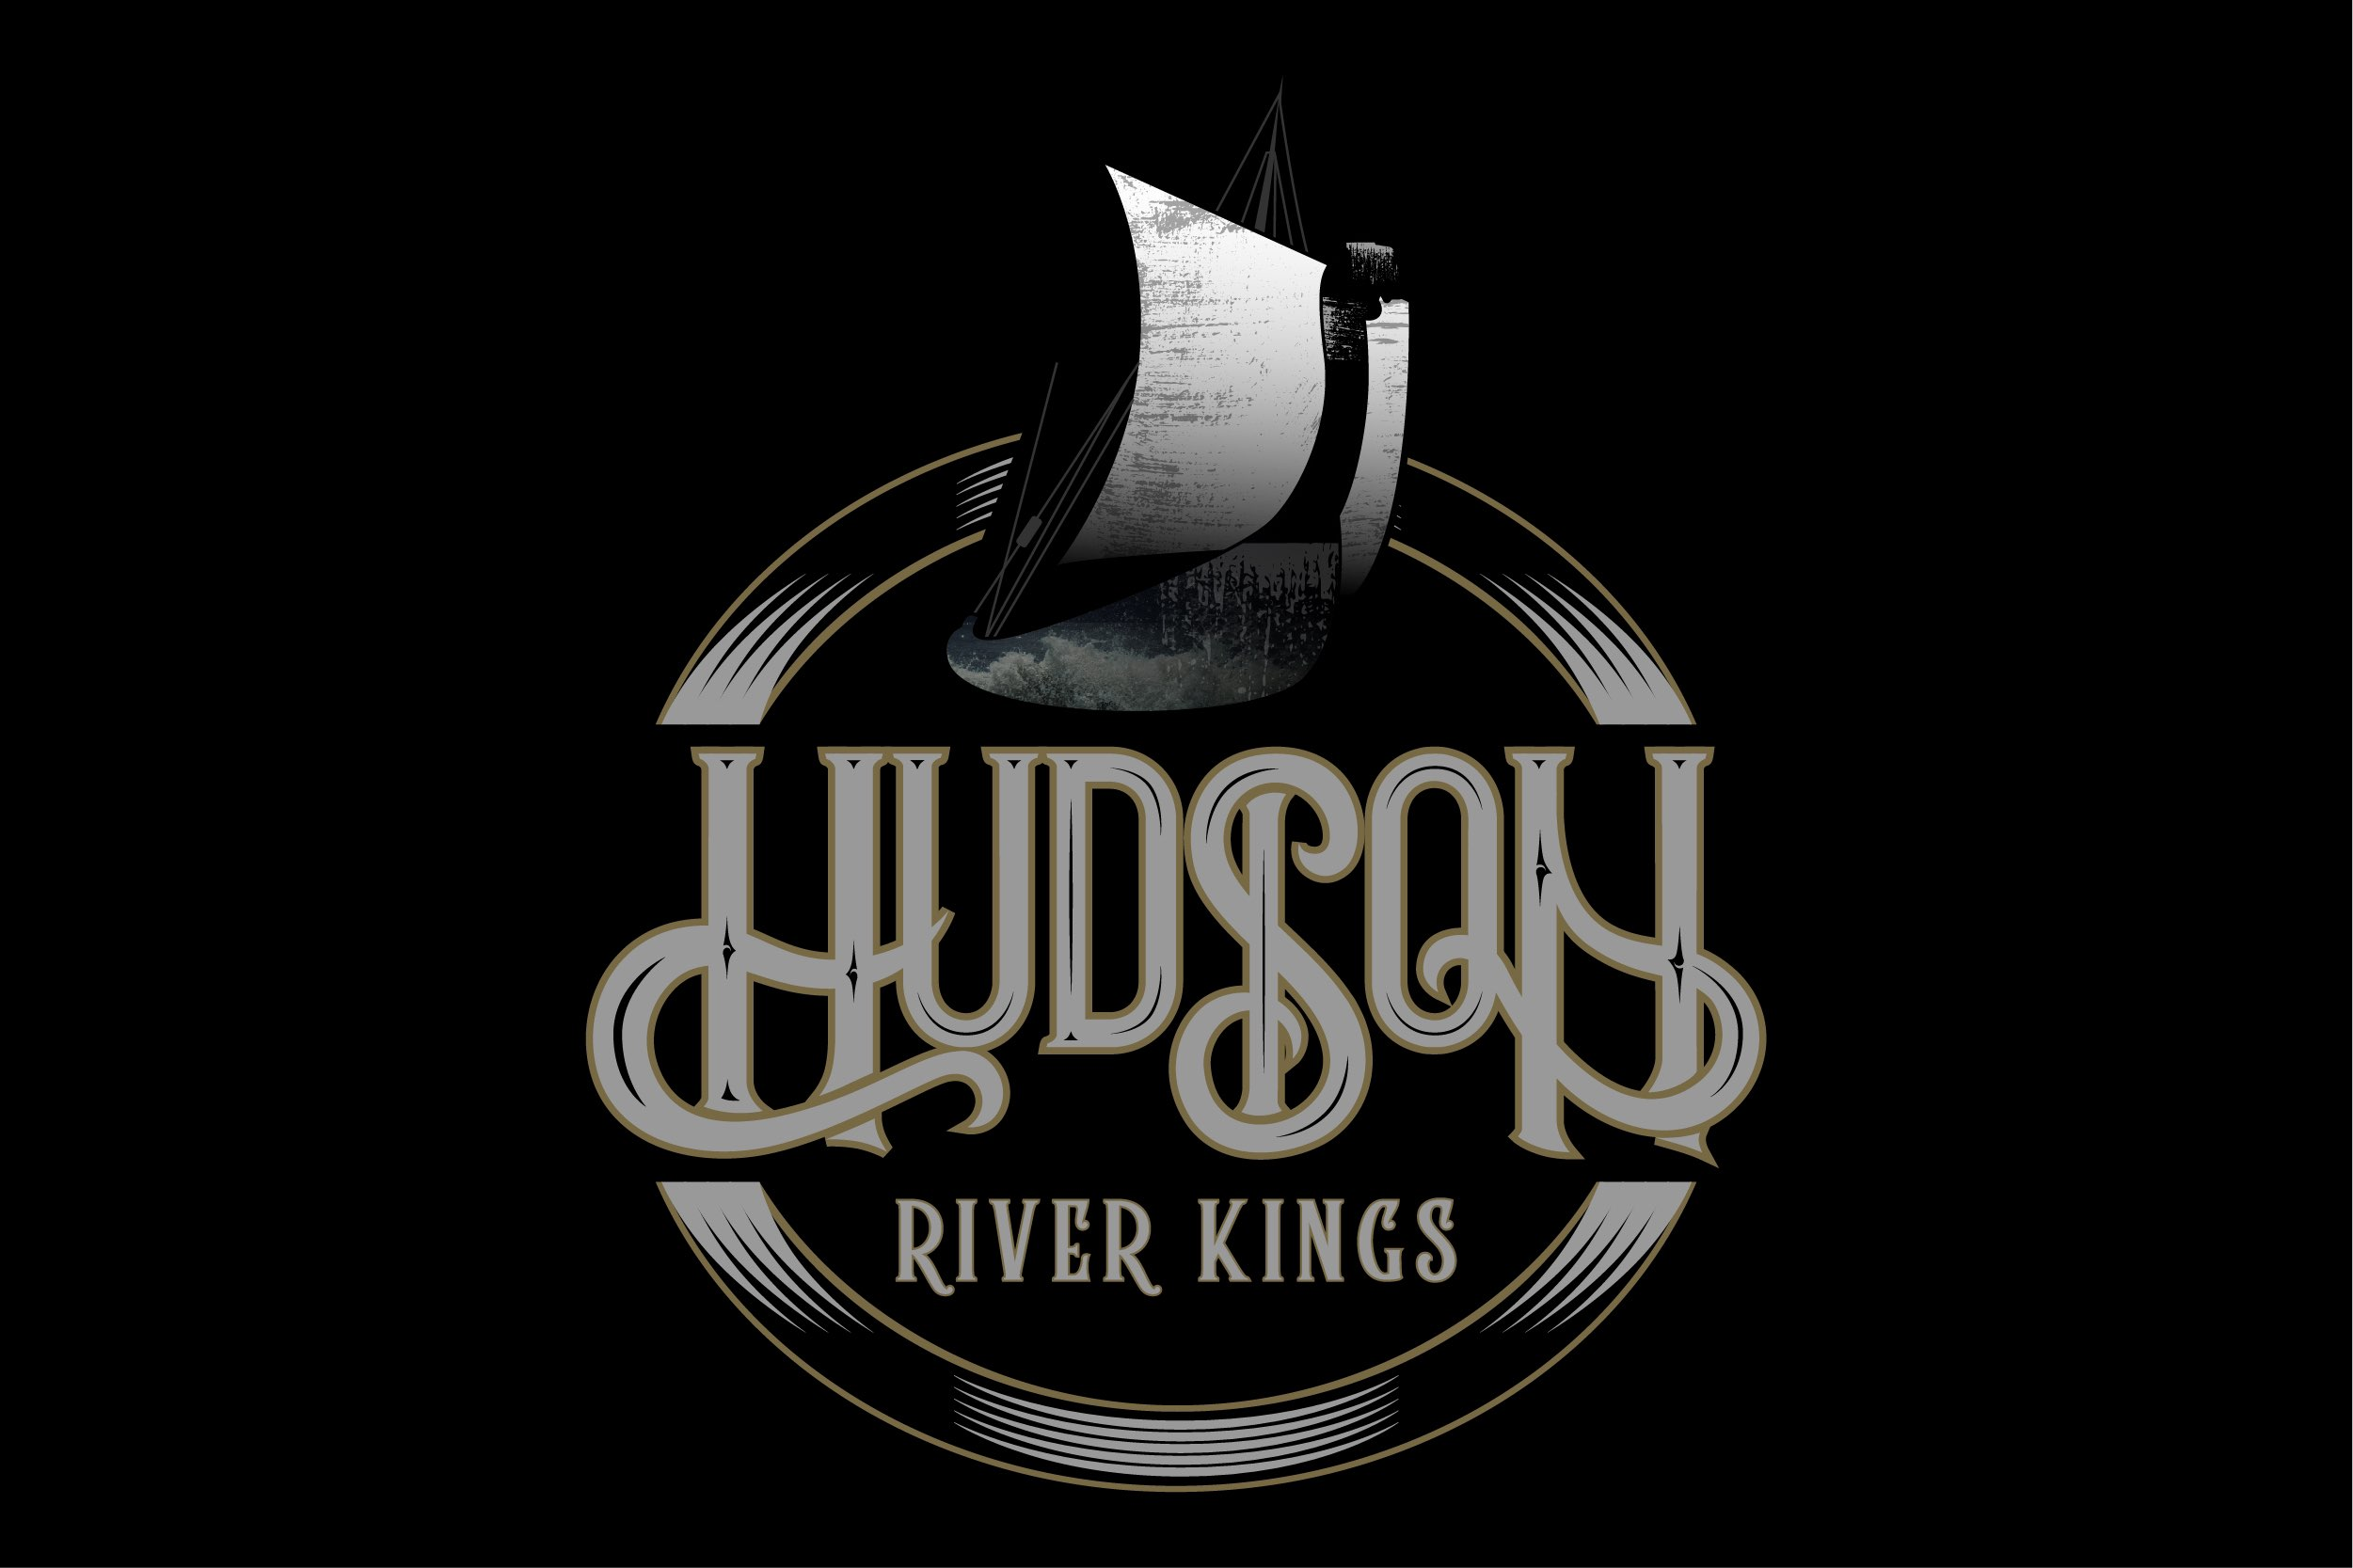 Hudson River Kings